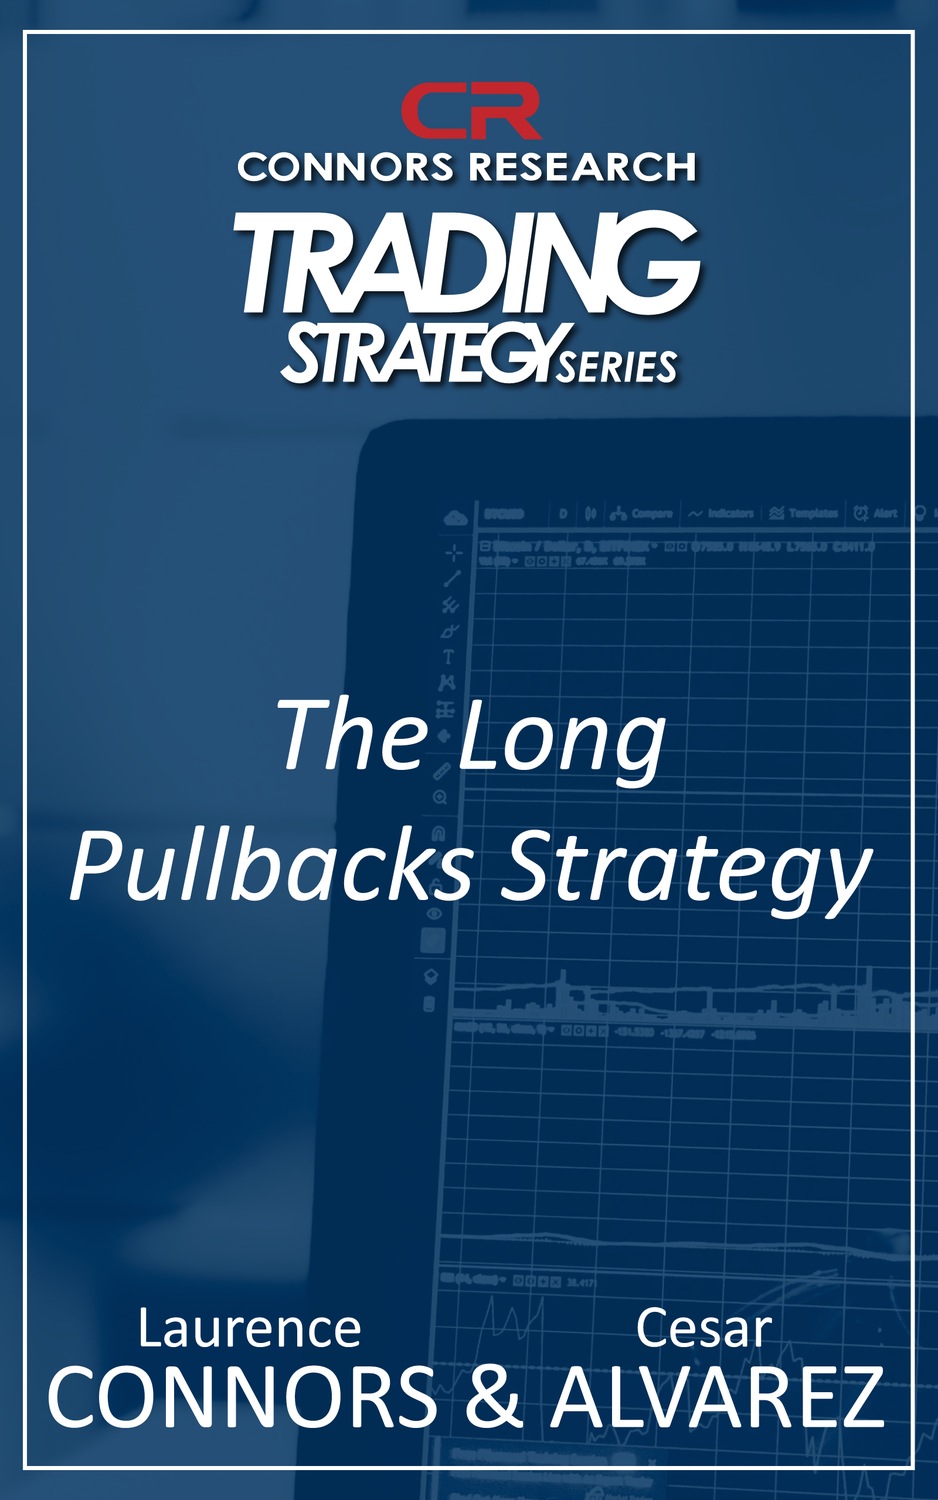 Connors Research Trading Strategy Series: The Long Pullbacks Strategy